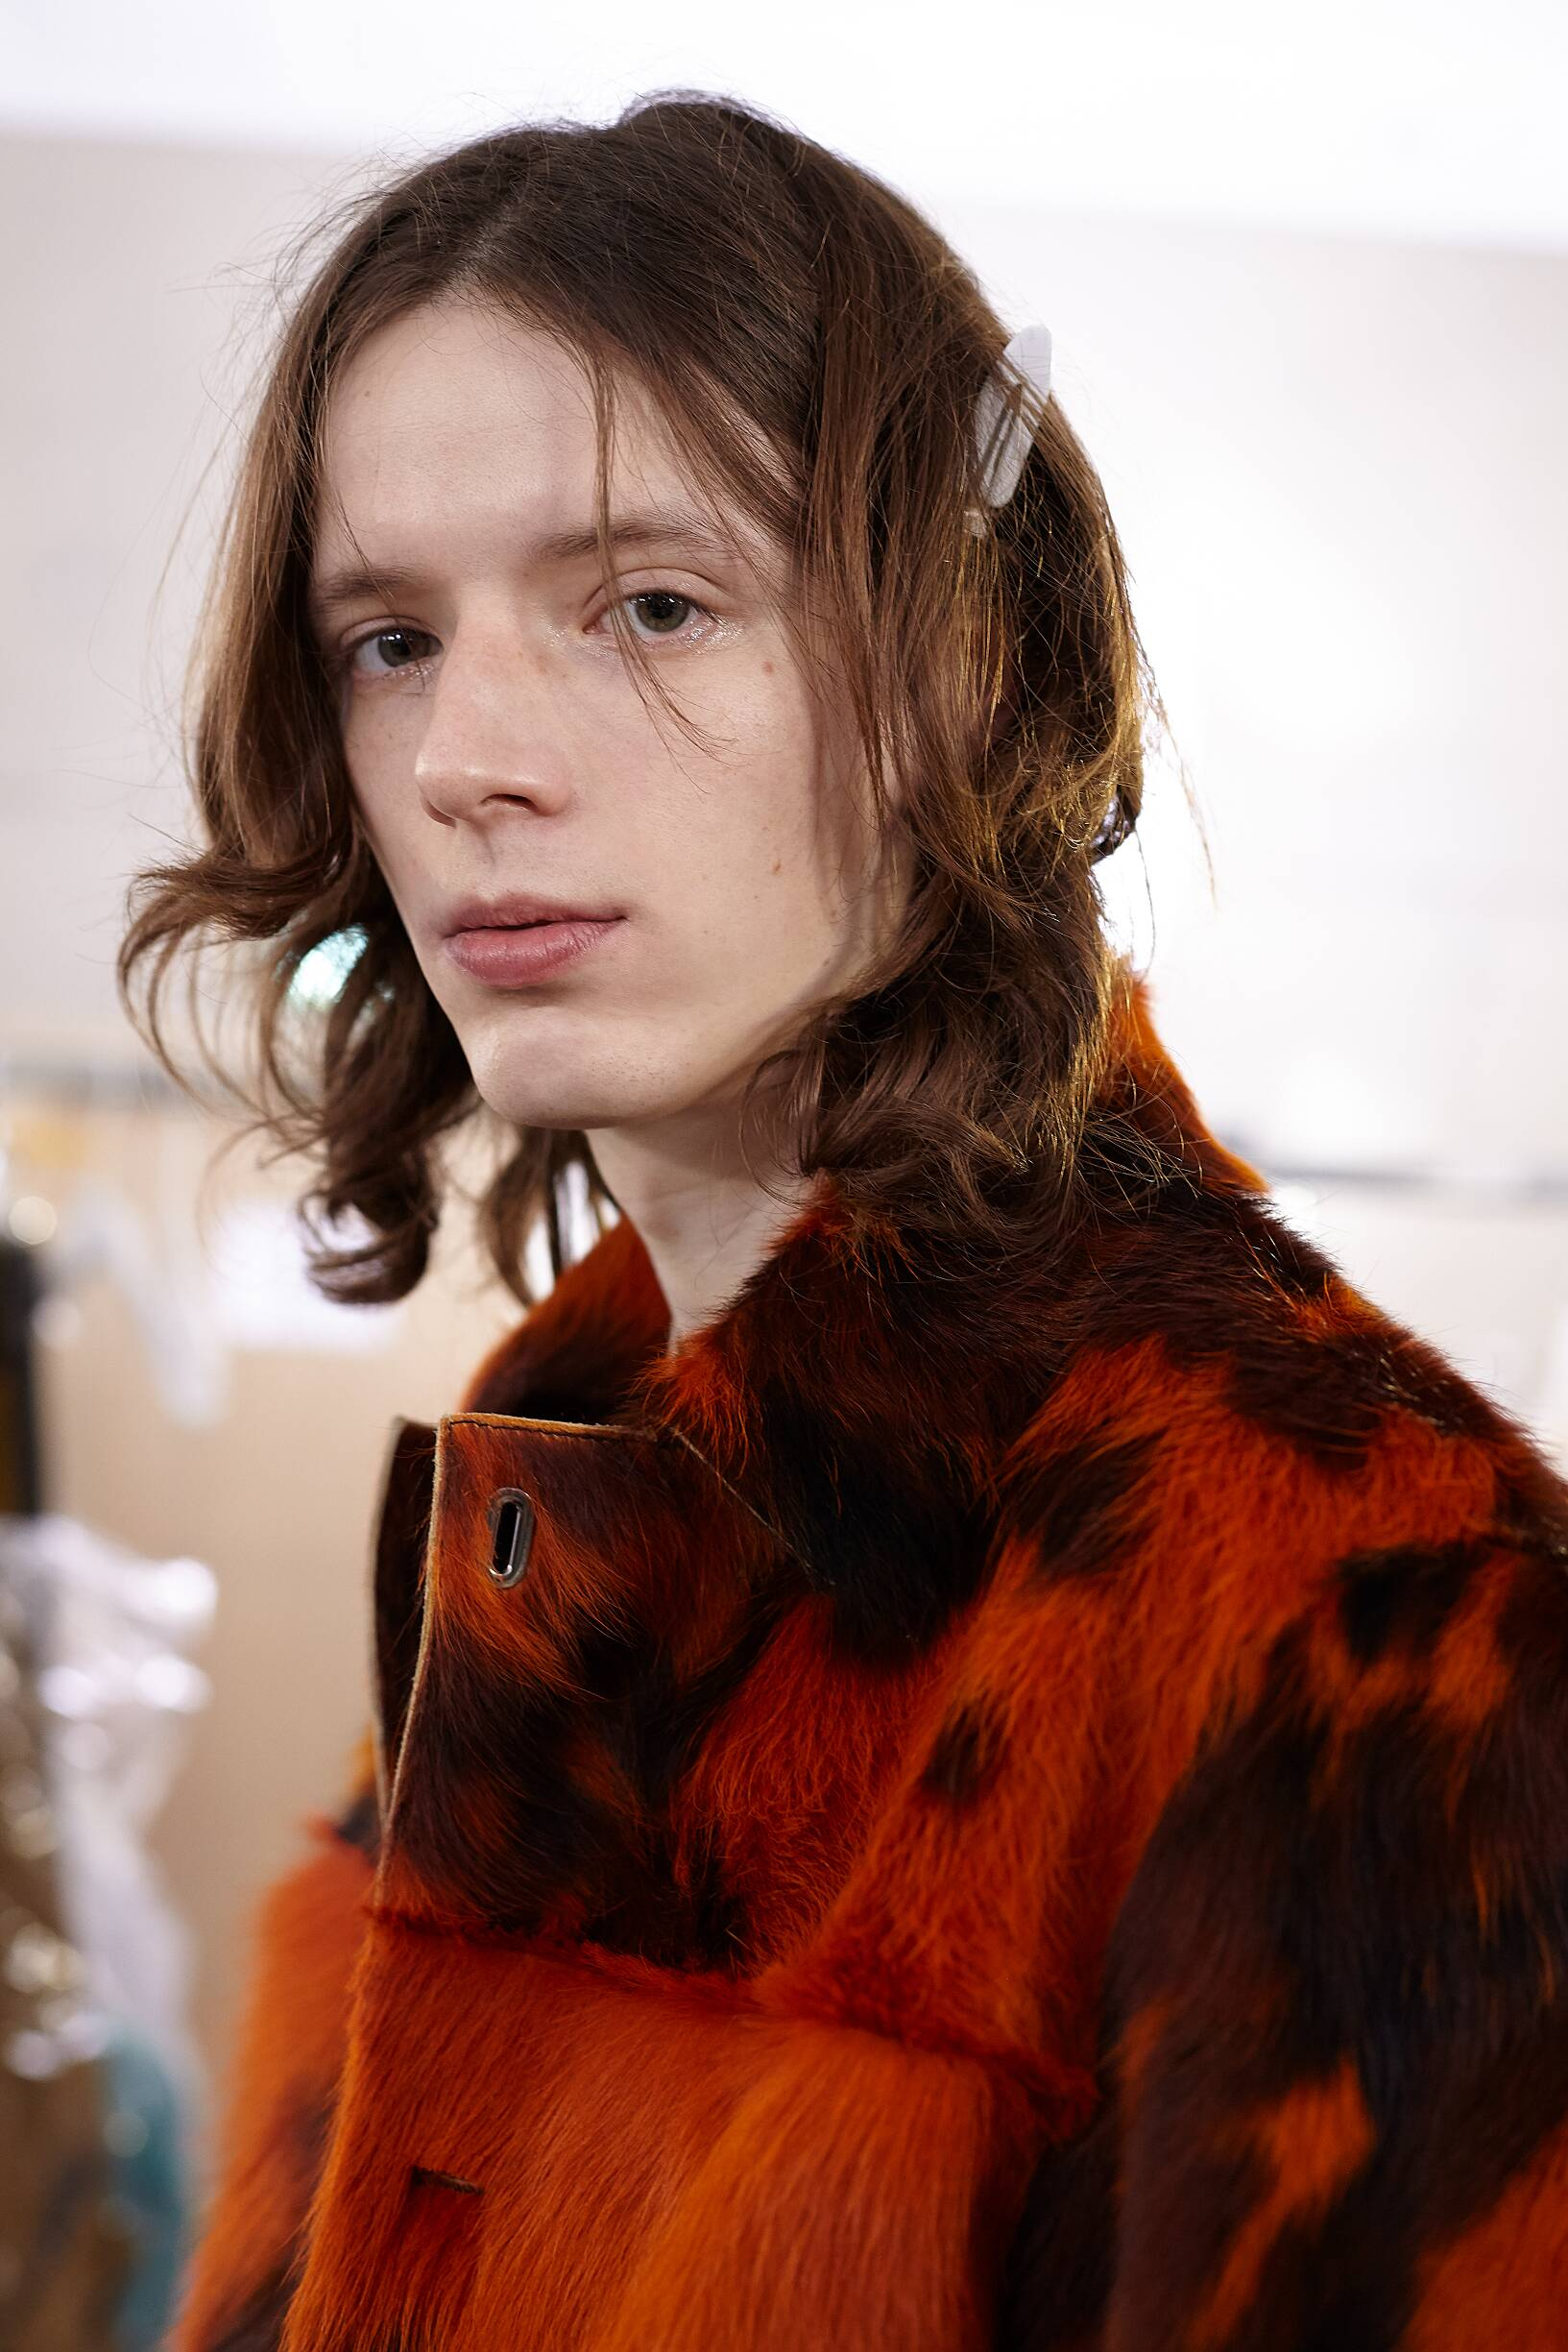 Backstage Acne Studios Model Portrait